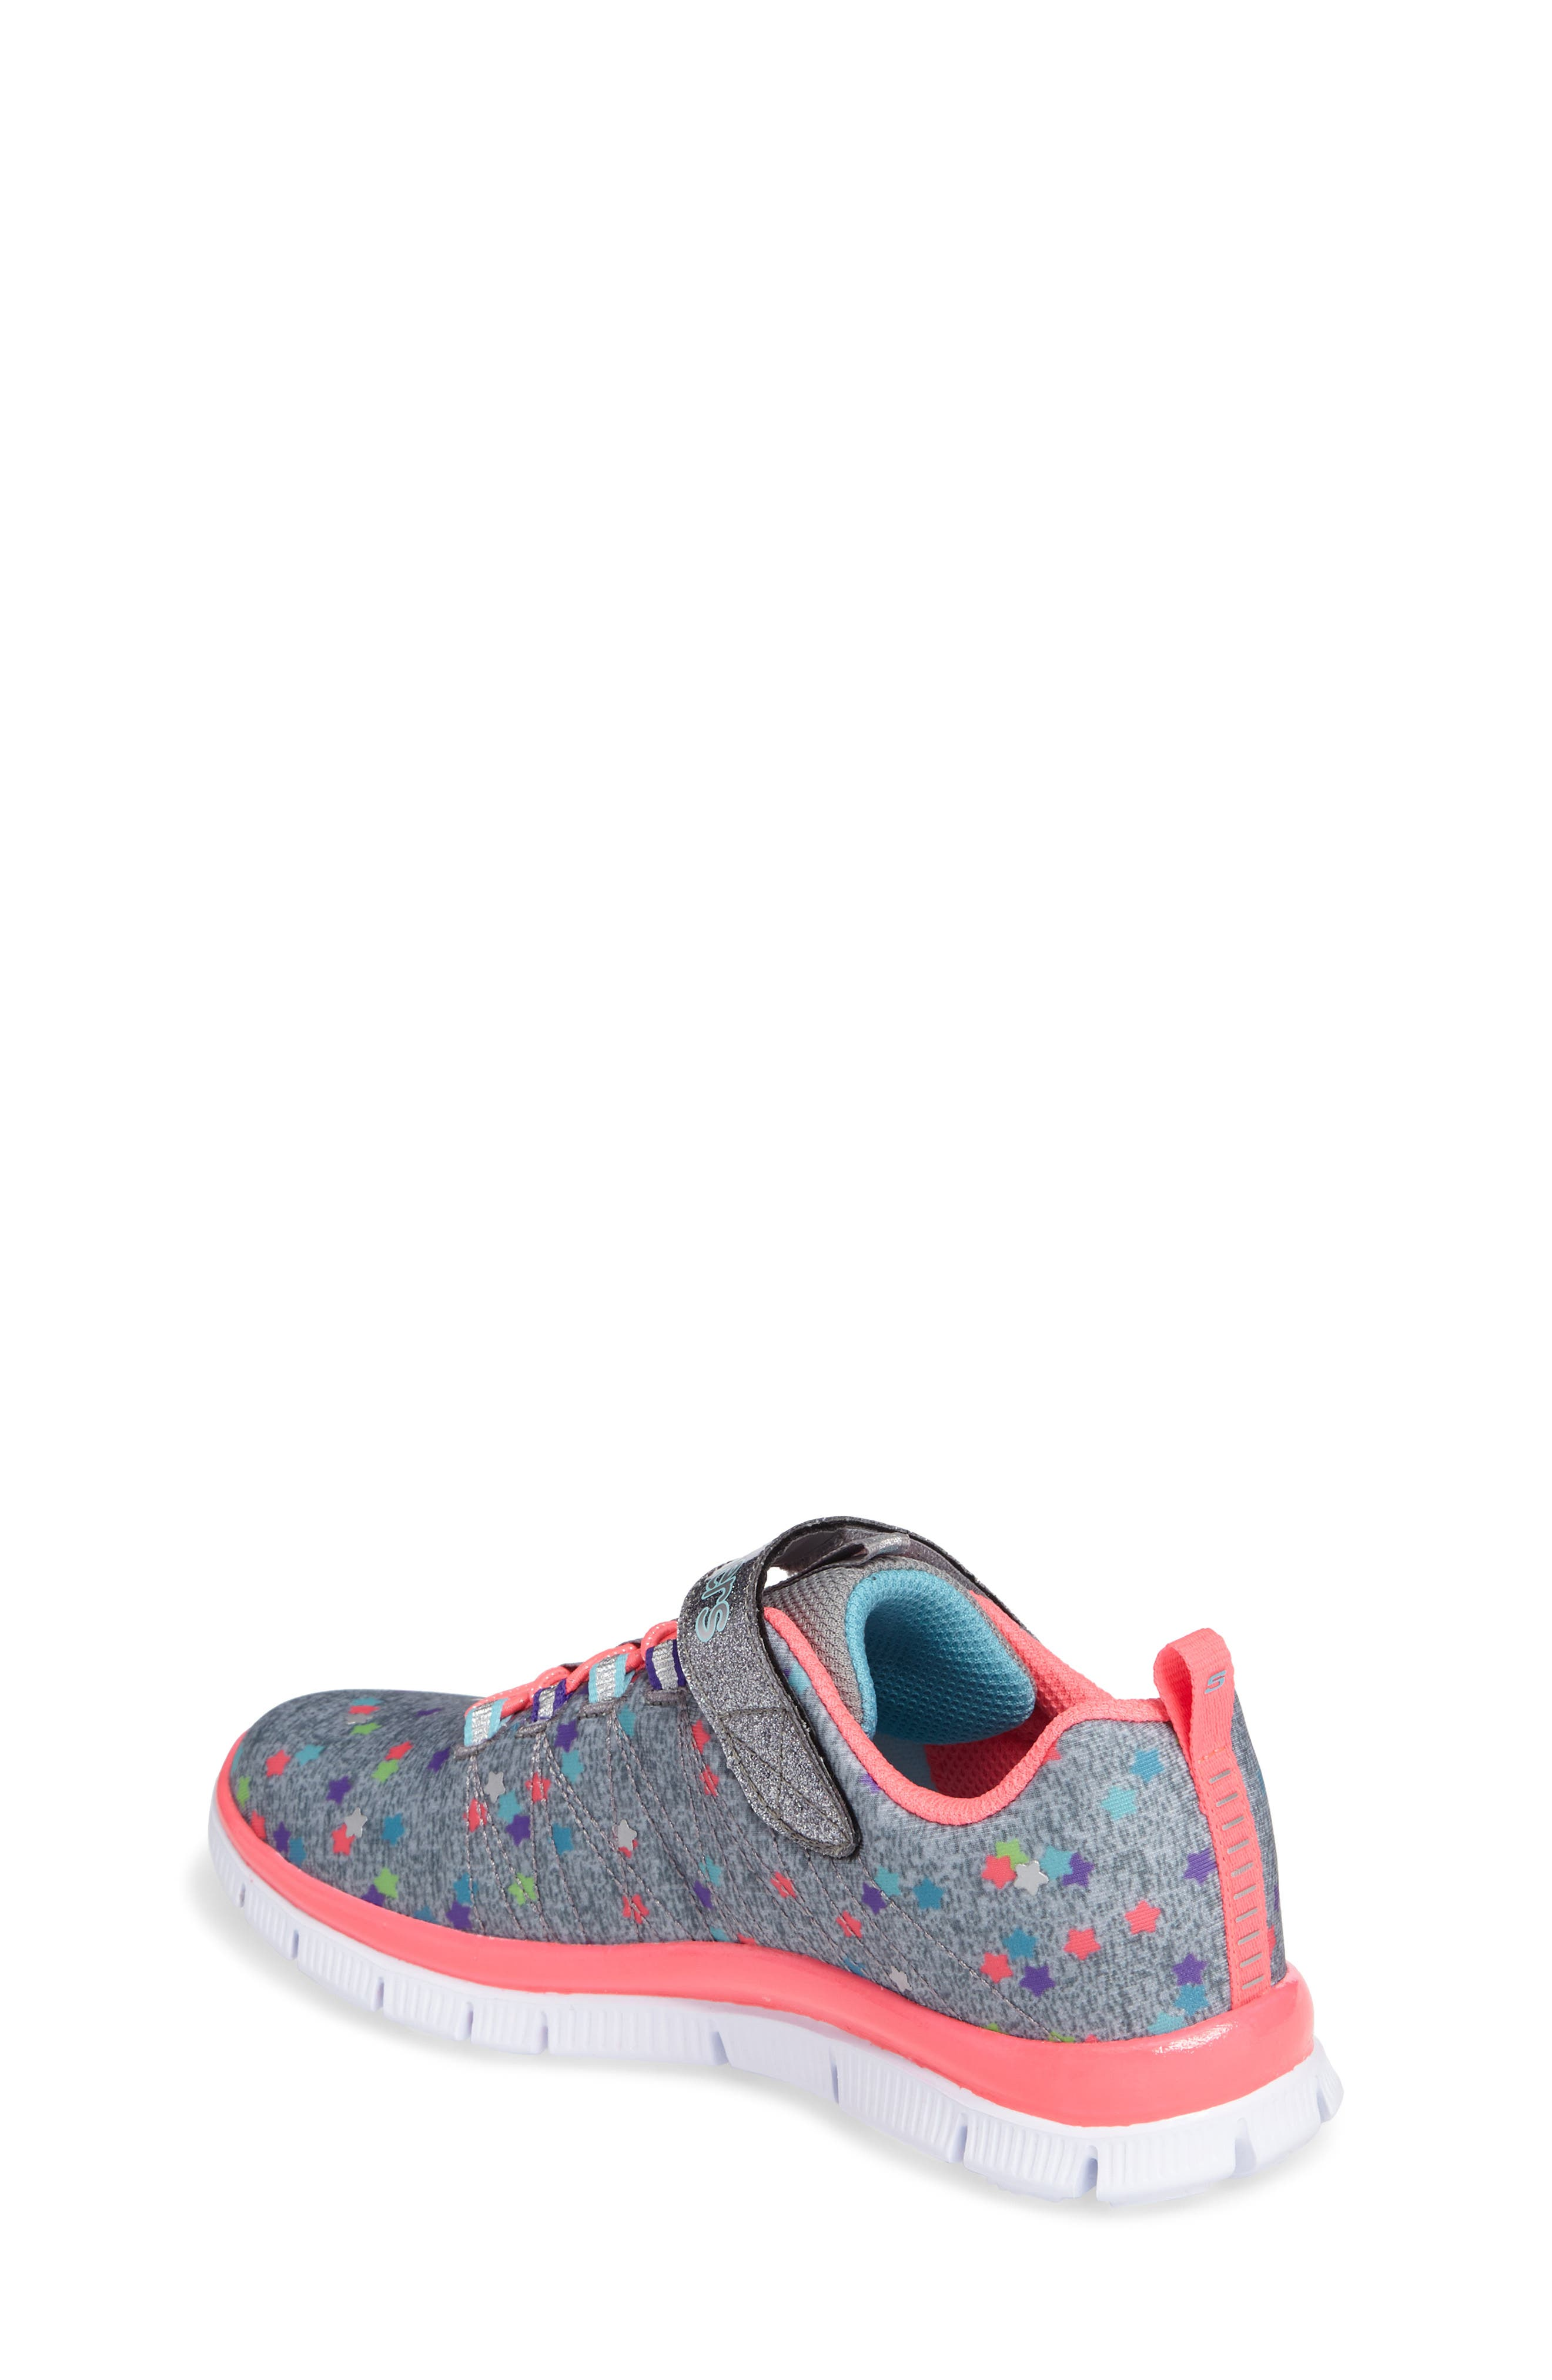 Skech Appeal Star Spirit Sneaker,                             Alternate thumbnail 2, color,                             Grey/ Multi